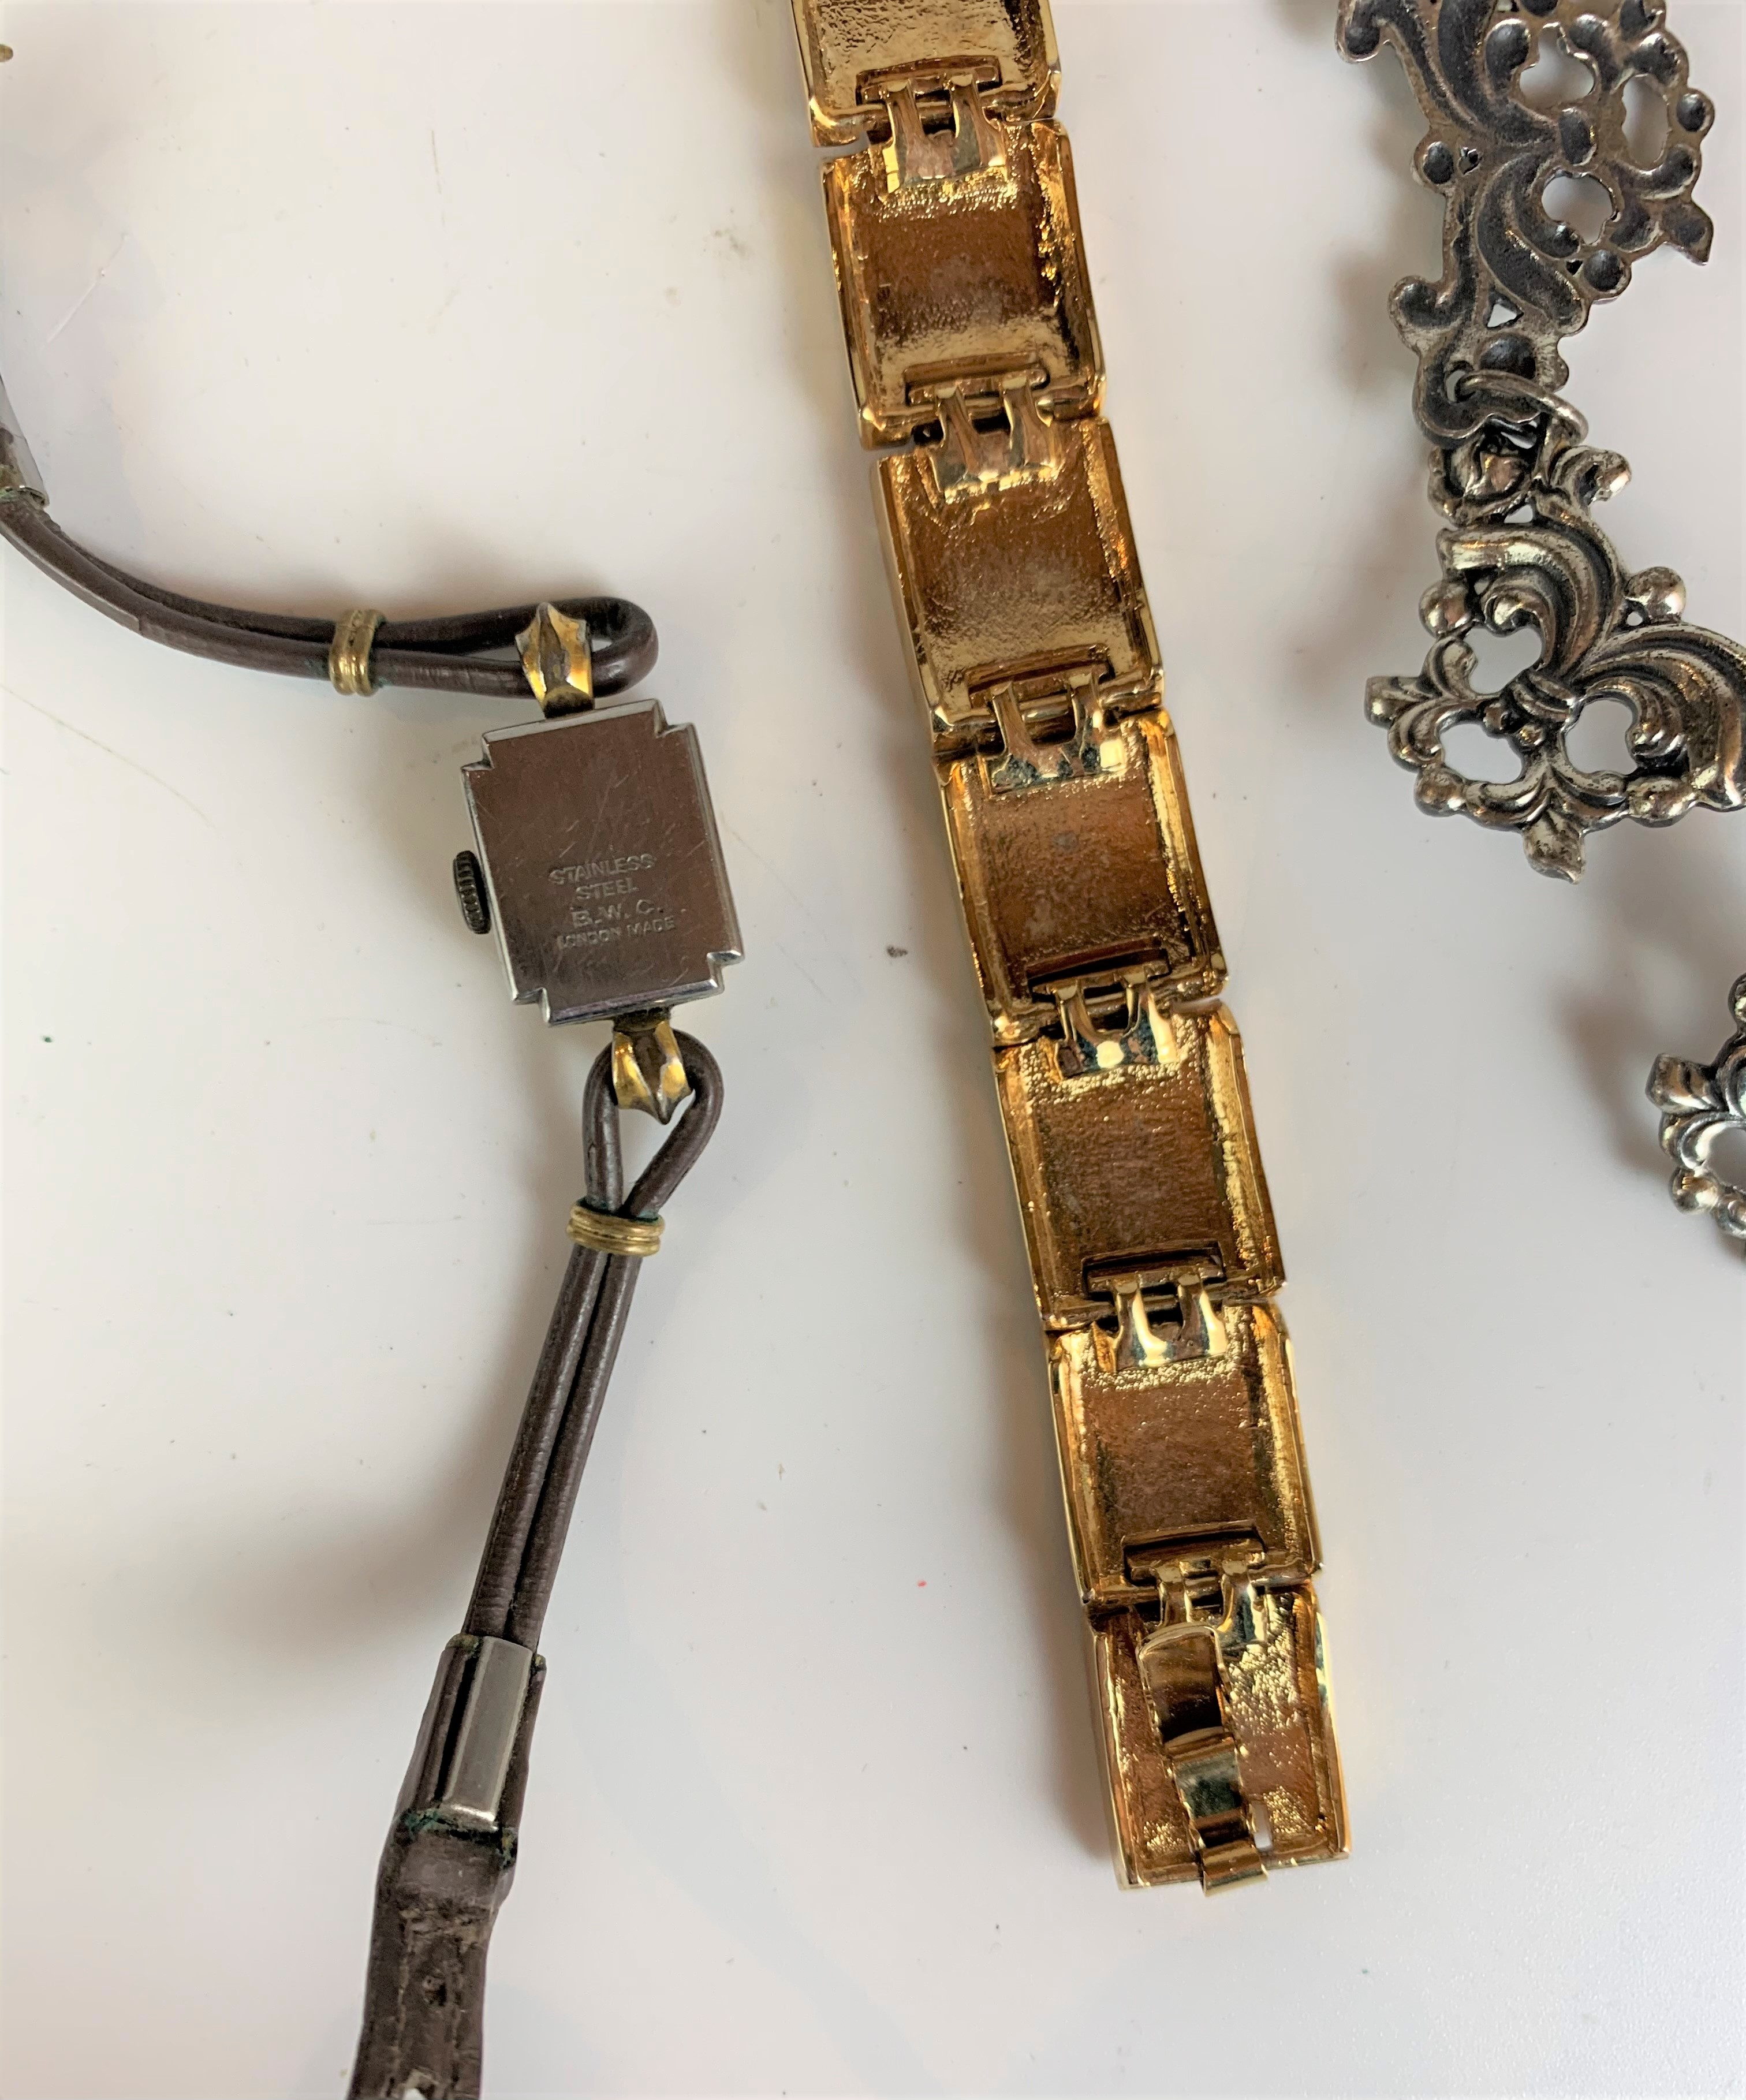 Dress plated necklace, enamel bracelet and Arnex ladies watch - Image 5 of 5